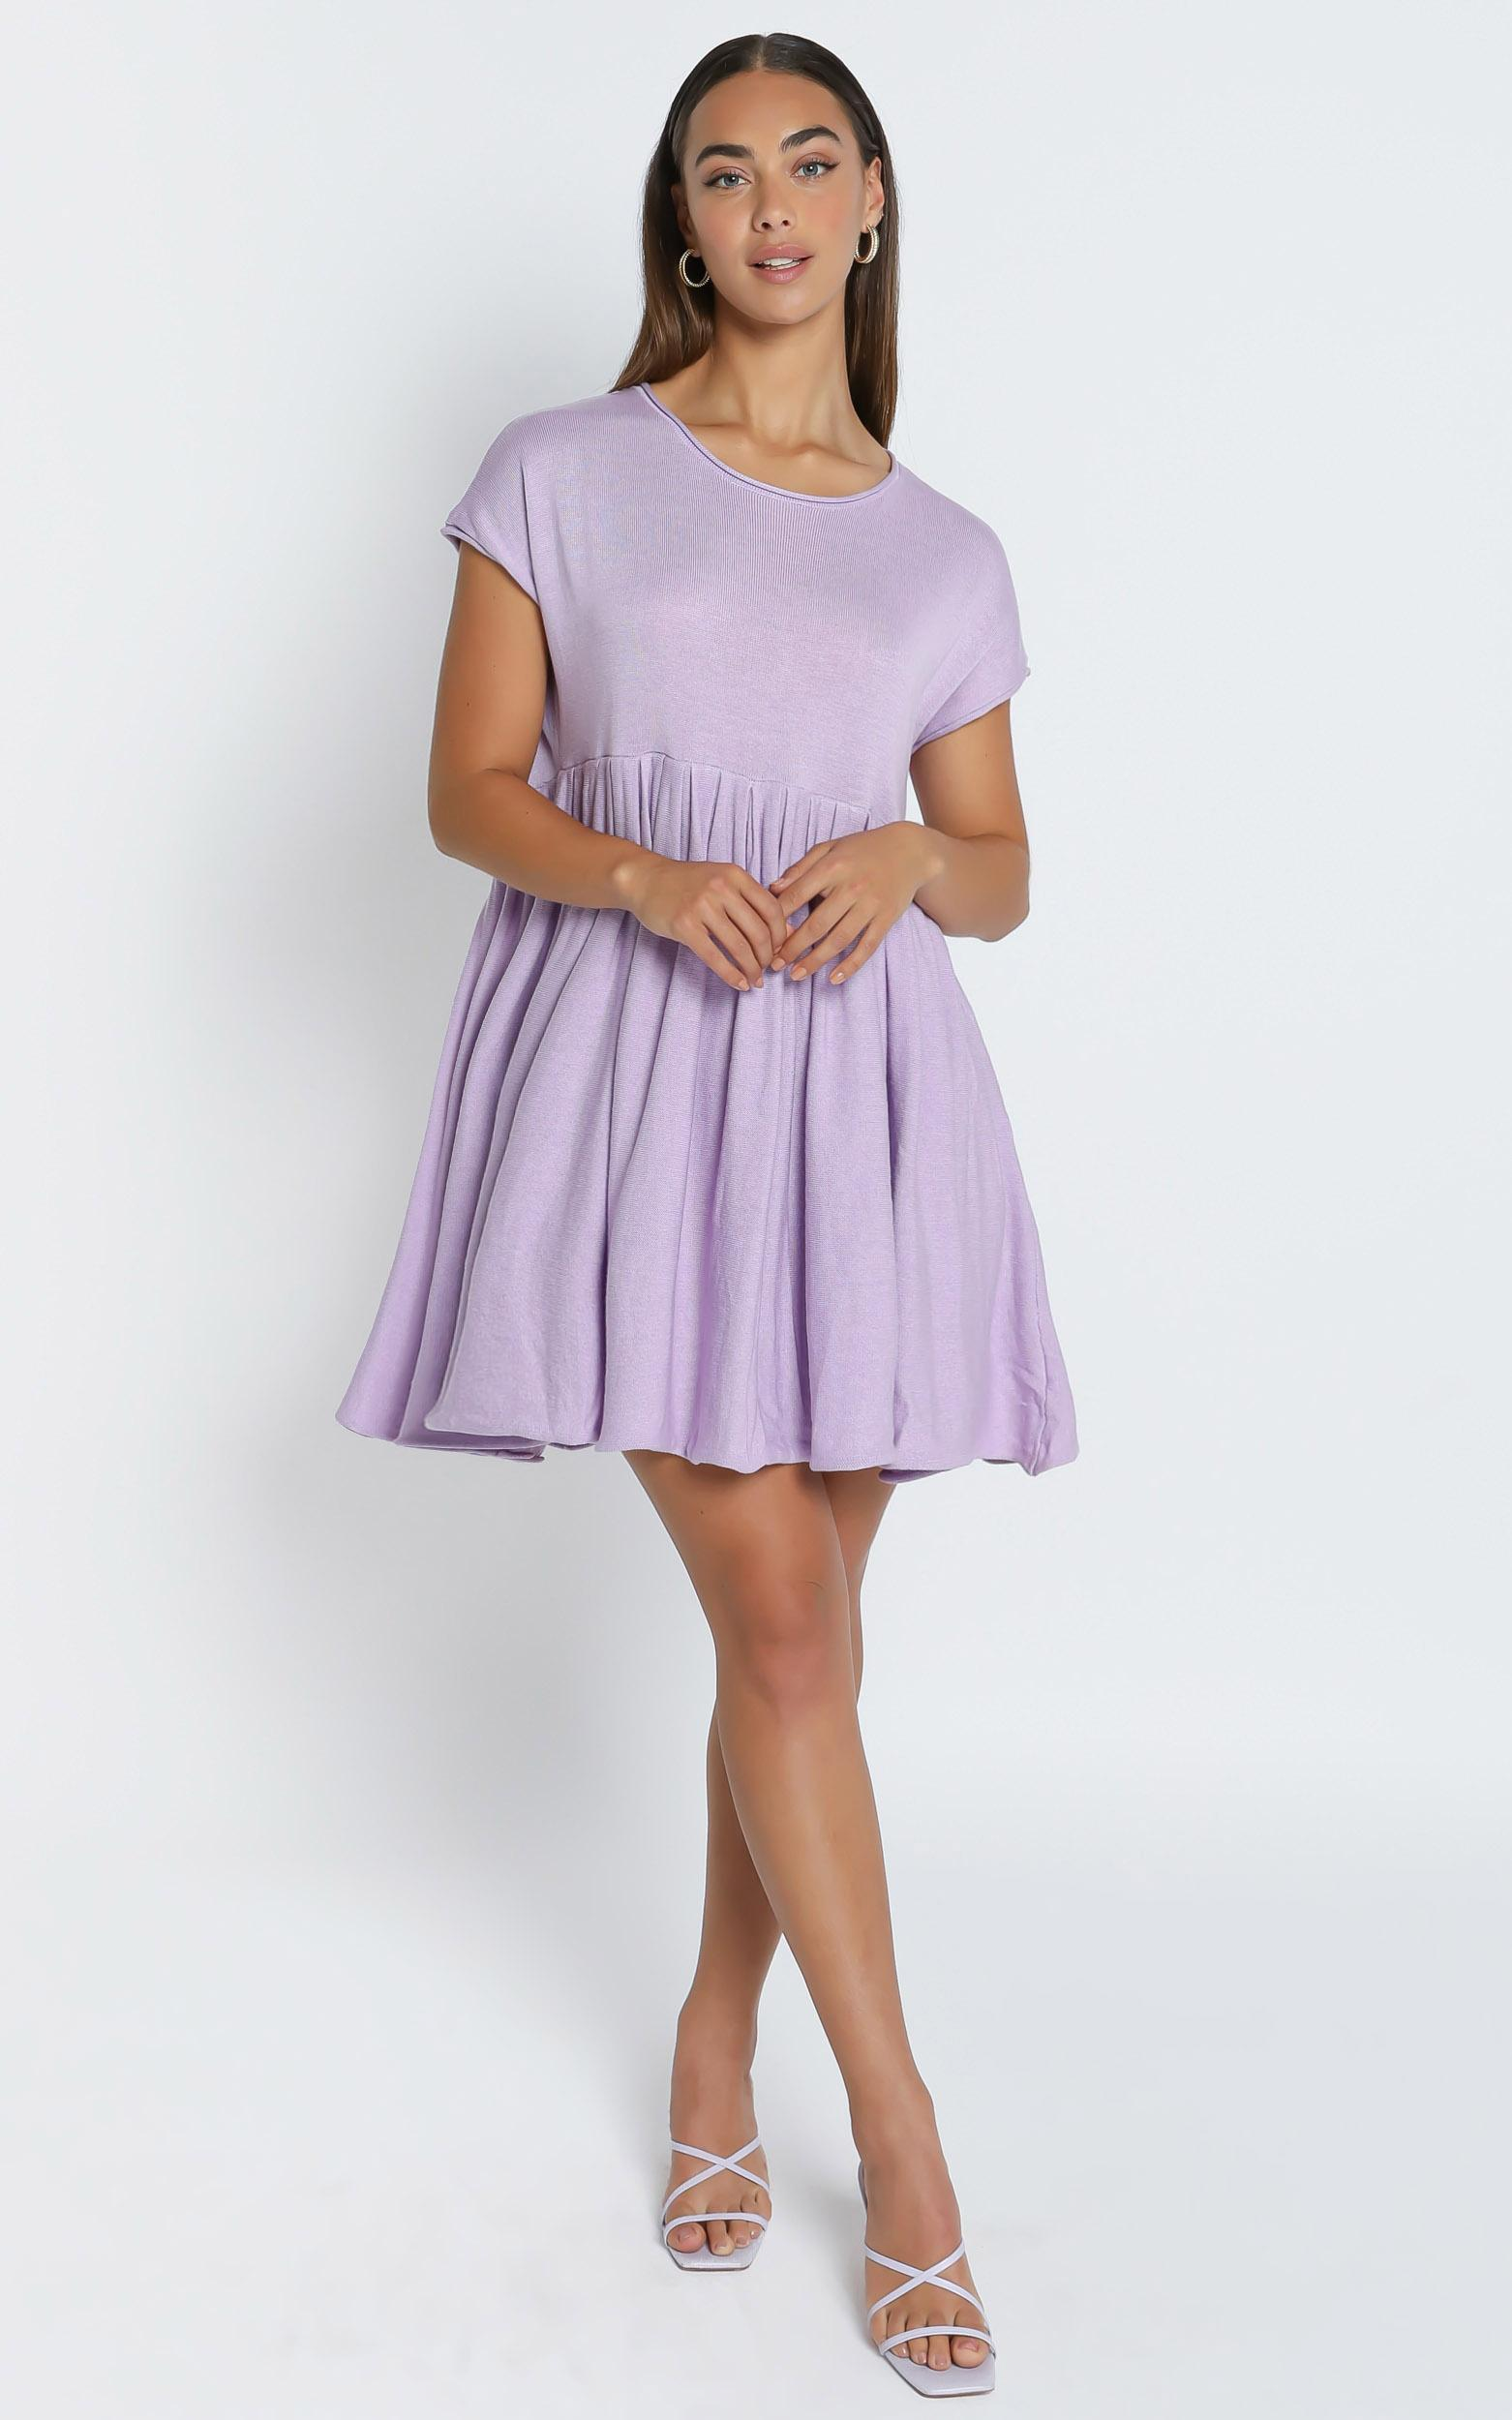 Embry Knit Dress in Lilac - 6 (XS), PRP3, hi-res image number null